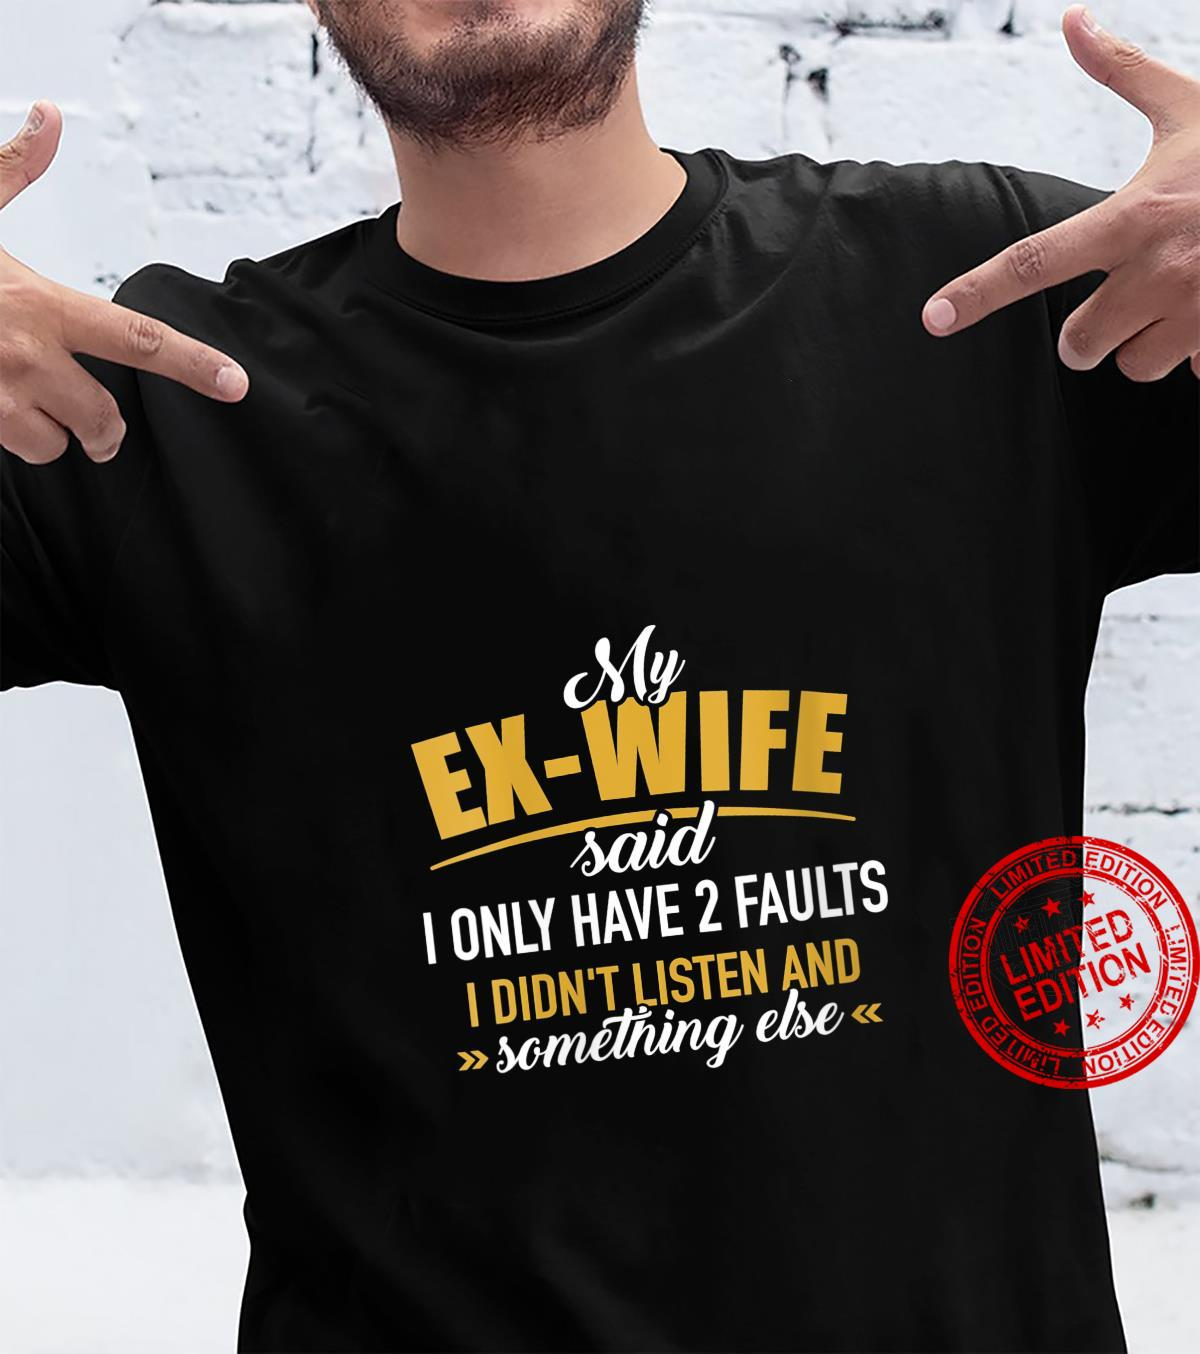 Womens Ex Wife two faults didn't listen something else Shirt